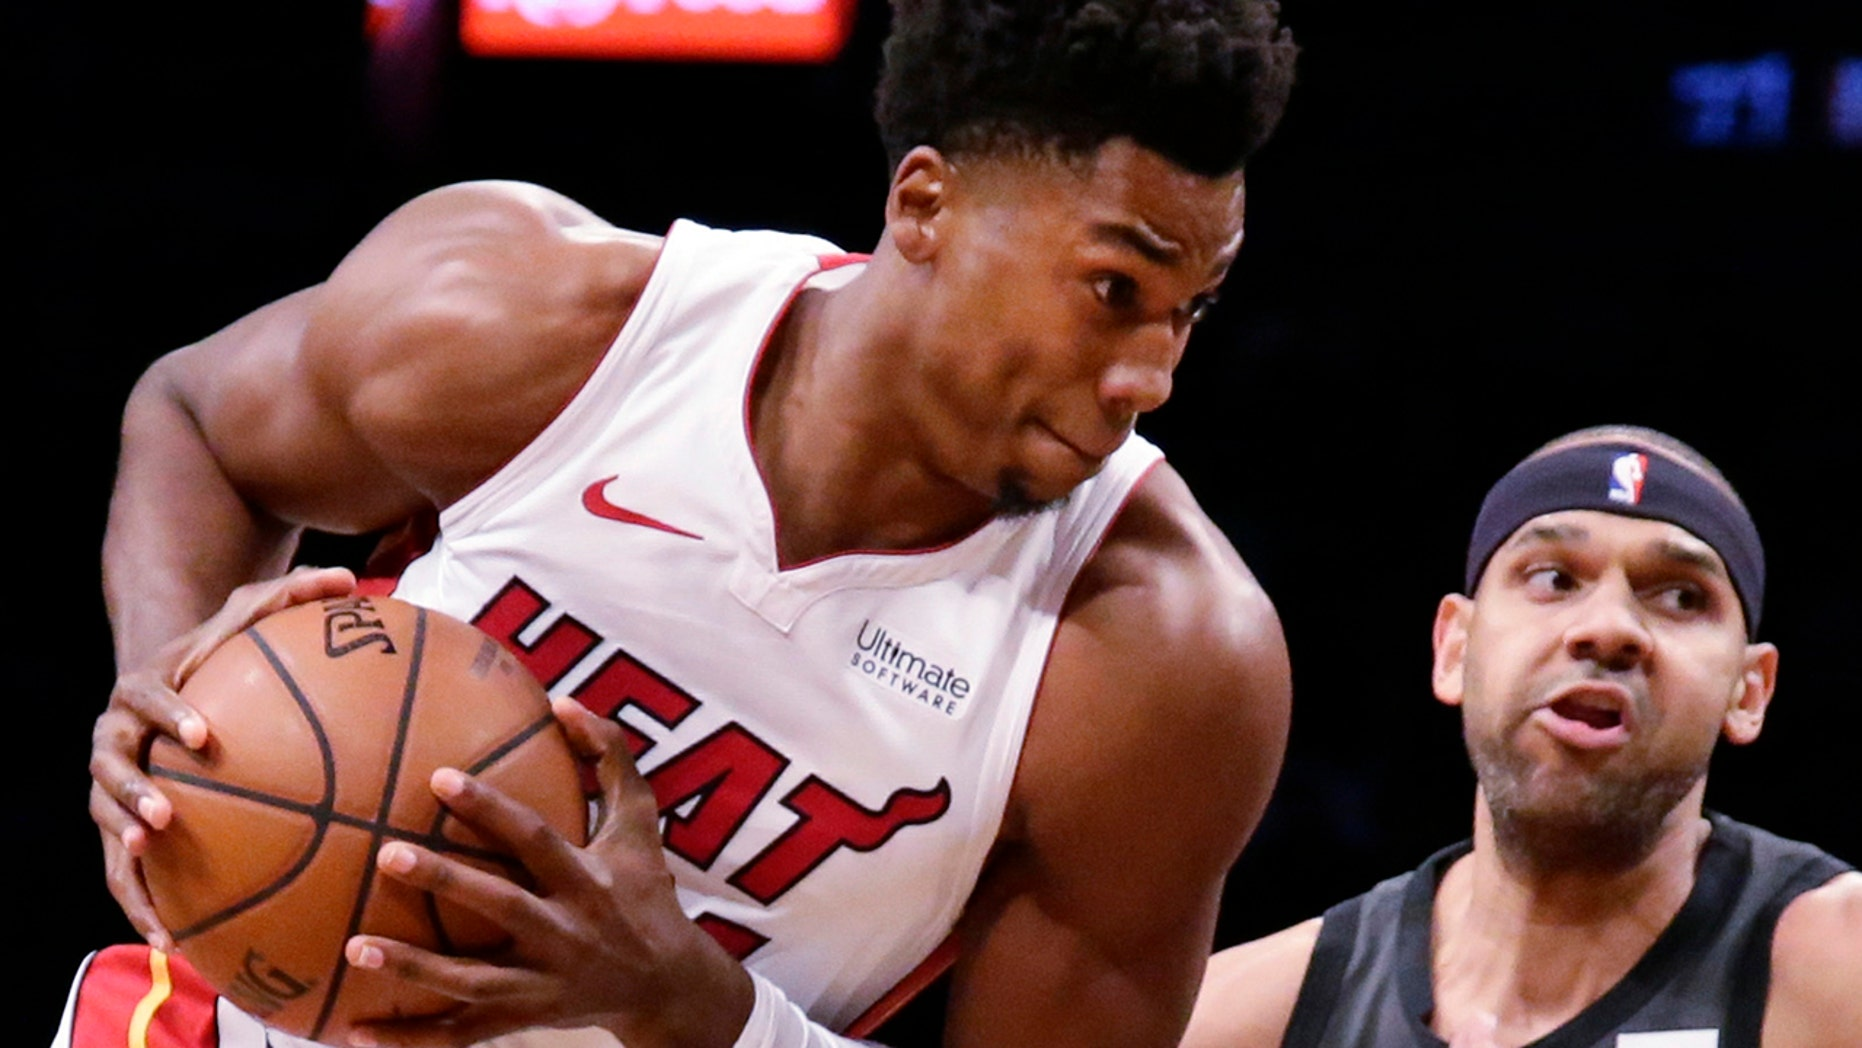 Miami Heat's Hassan Whiteside (21) drives past Brooklyn Nets' Jared Dudley (6) during the first half of an NBA basketball game Wednesday, Nov. 14, 2018, in New York.